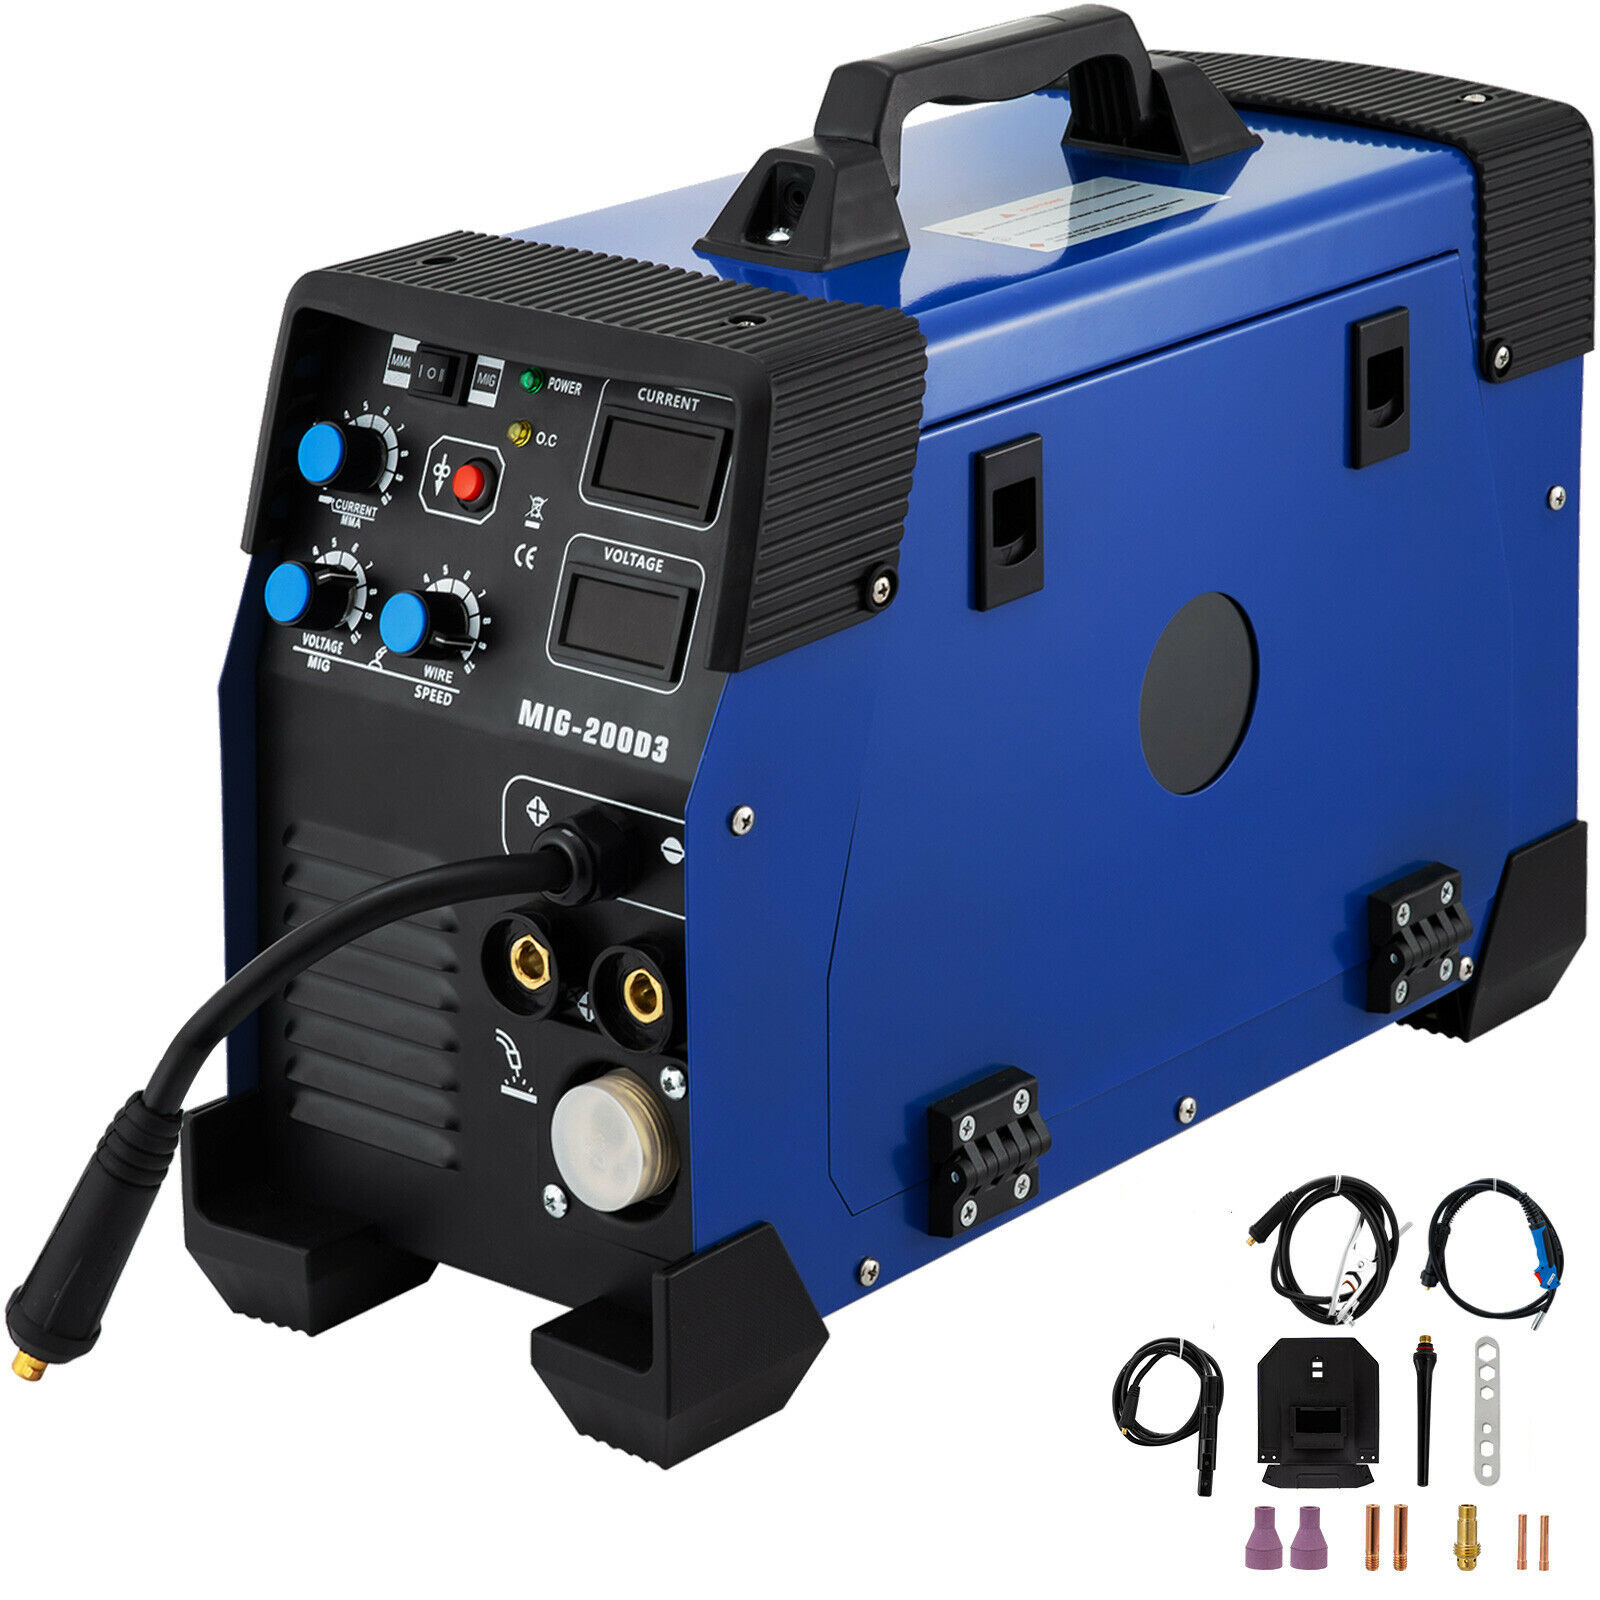 3 In 1 MIG / MAG / TIG / FLUX / MMA Inverter Welder 200Amp Combo Welding Machine